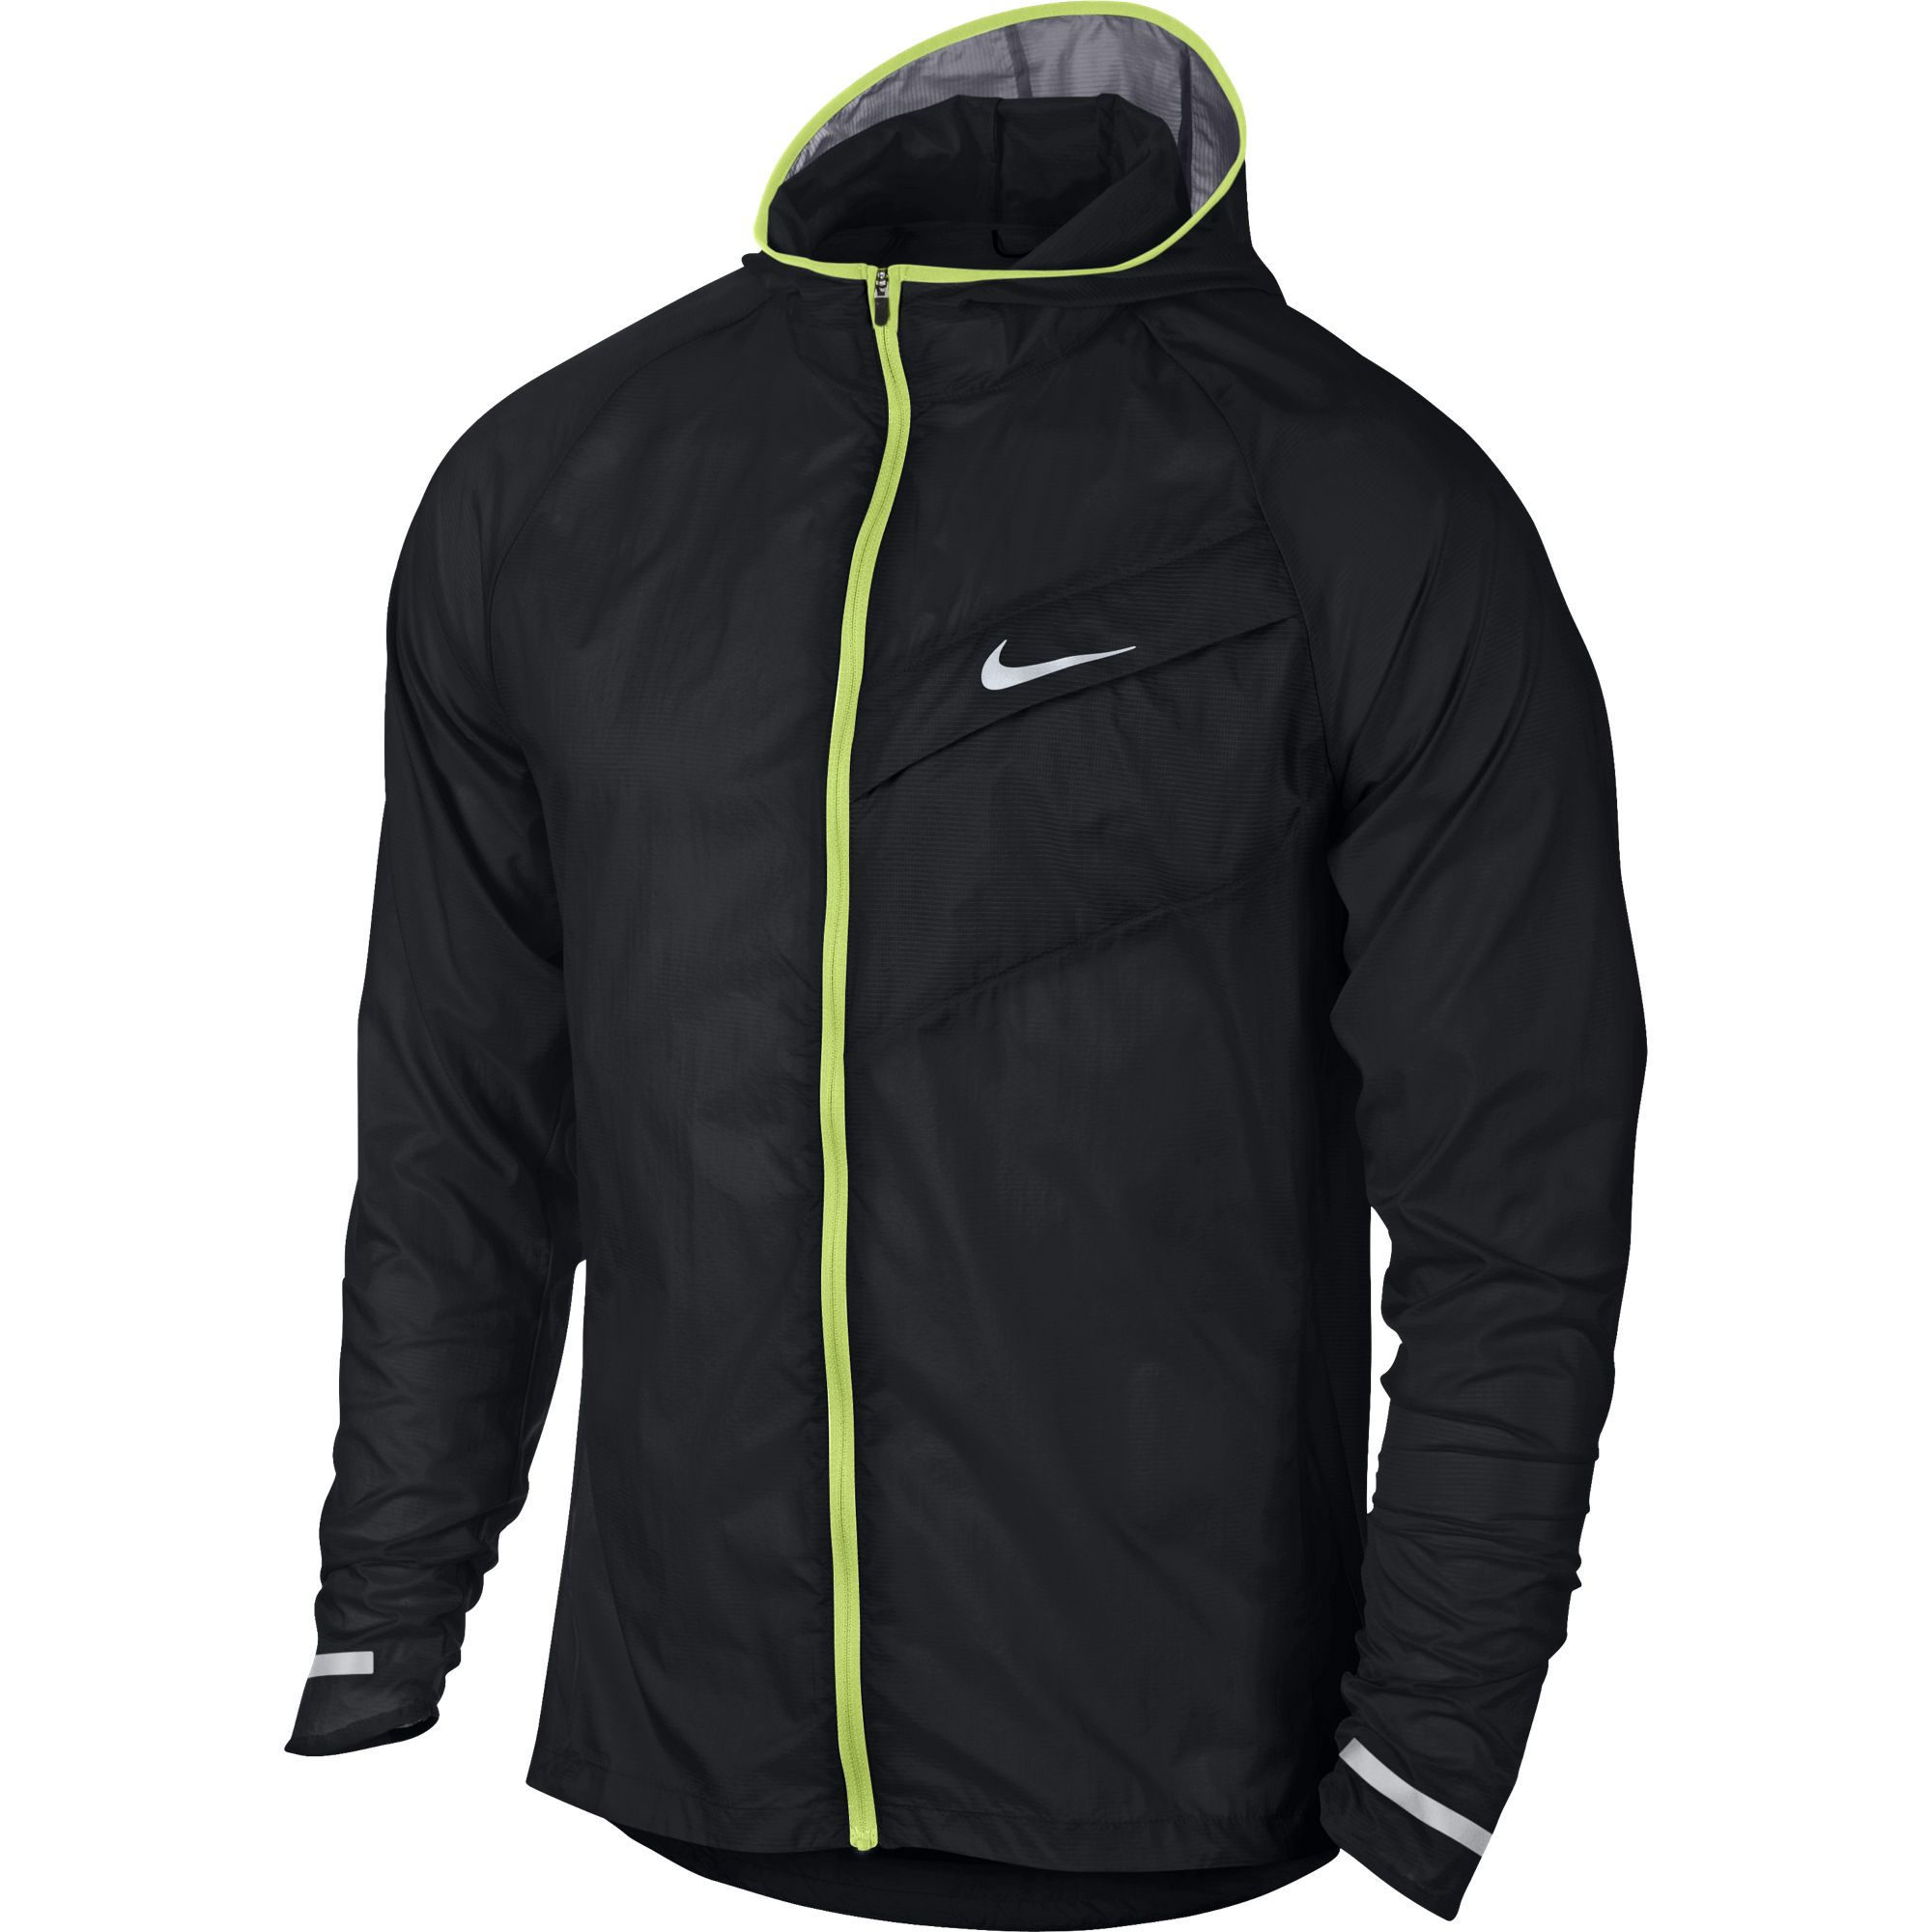 vestes de running coupe vent nike impossibly light jacket fa15 wiggle france. Black Bedroom Furniture Sets. Home Design Ideas